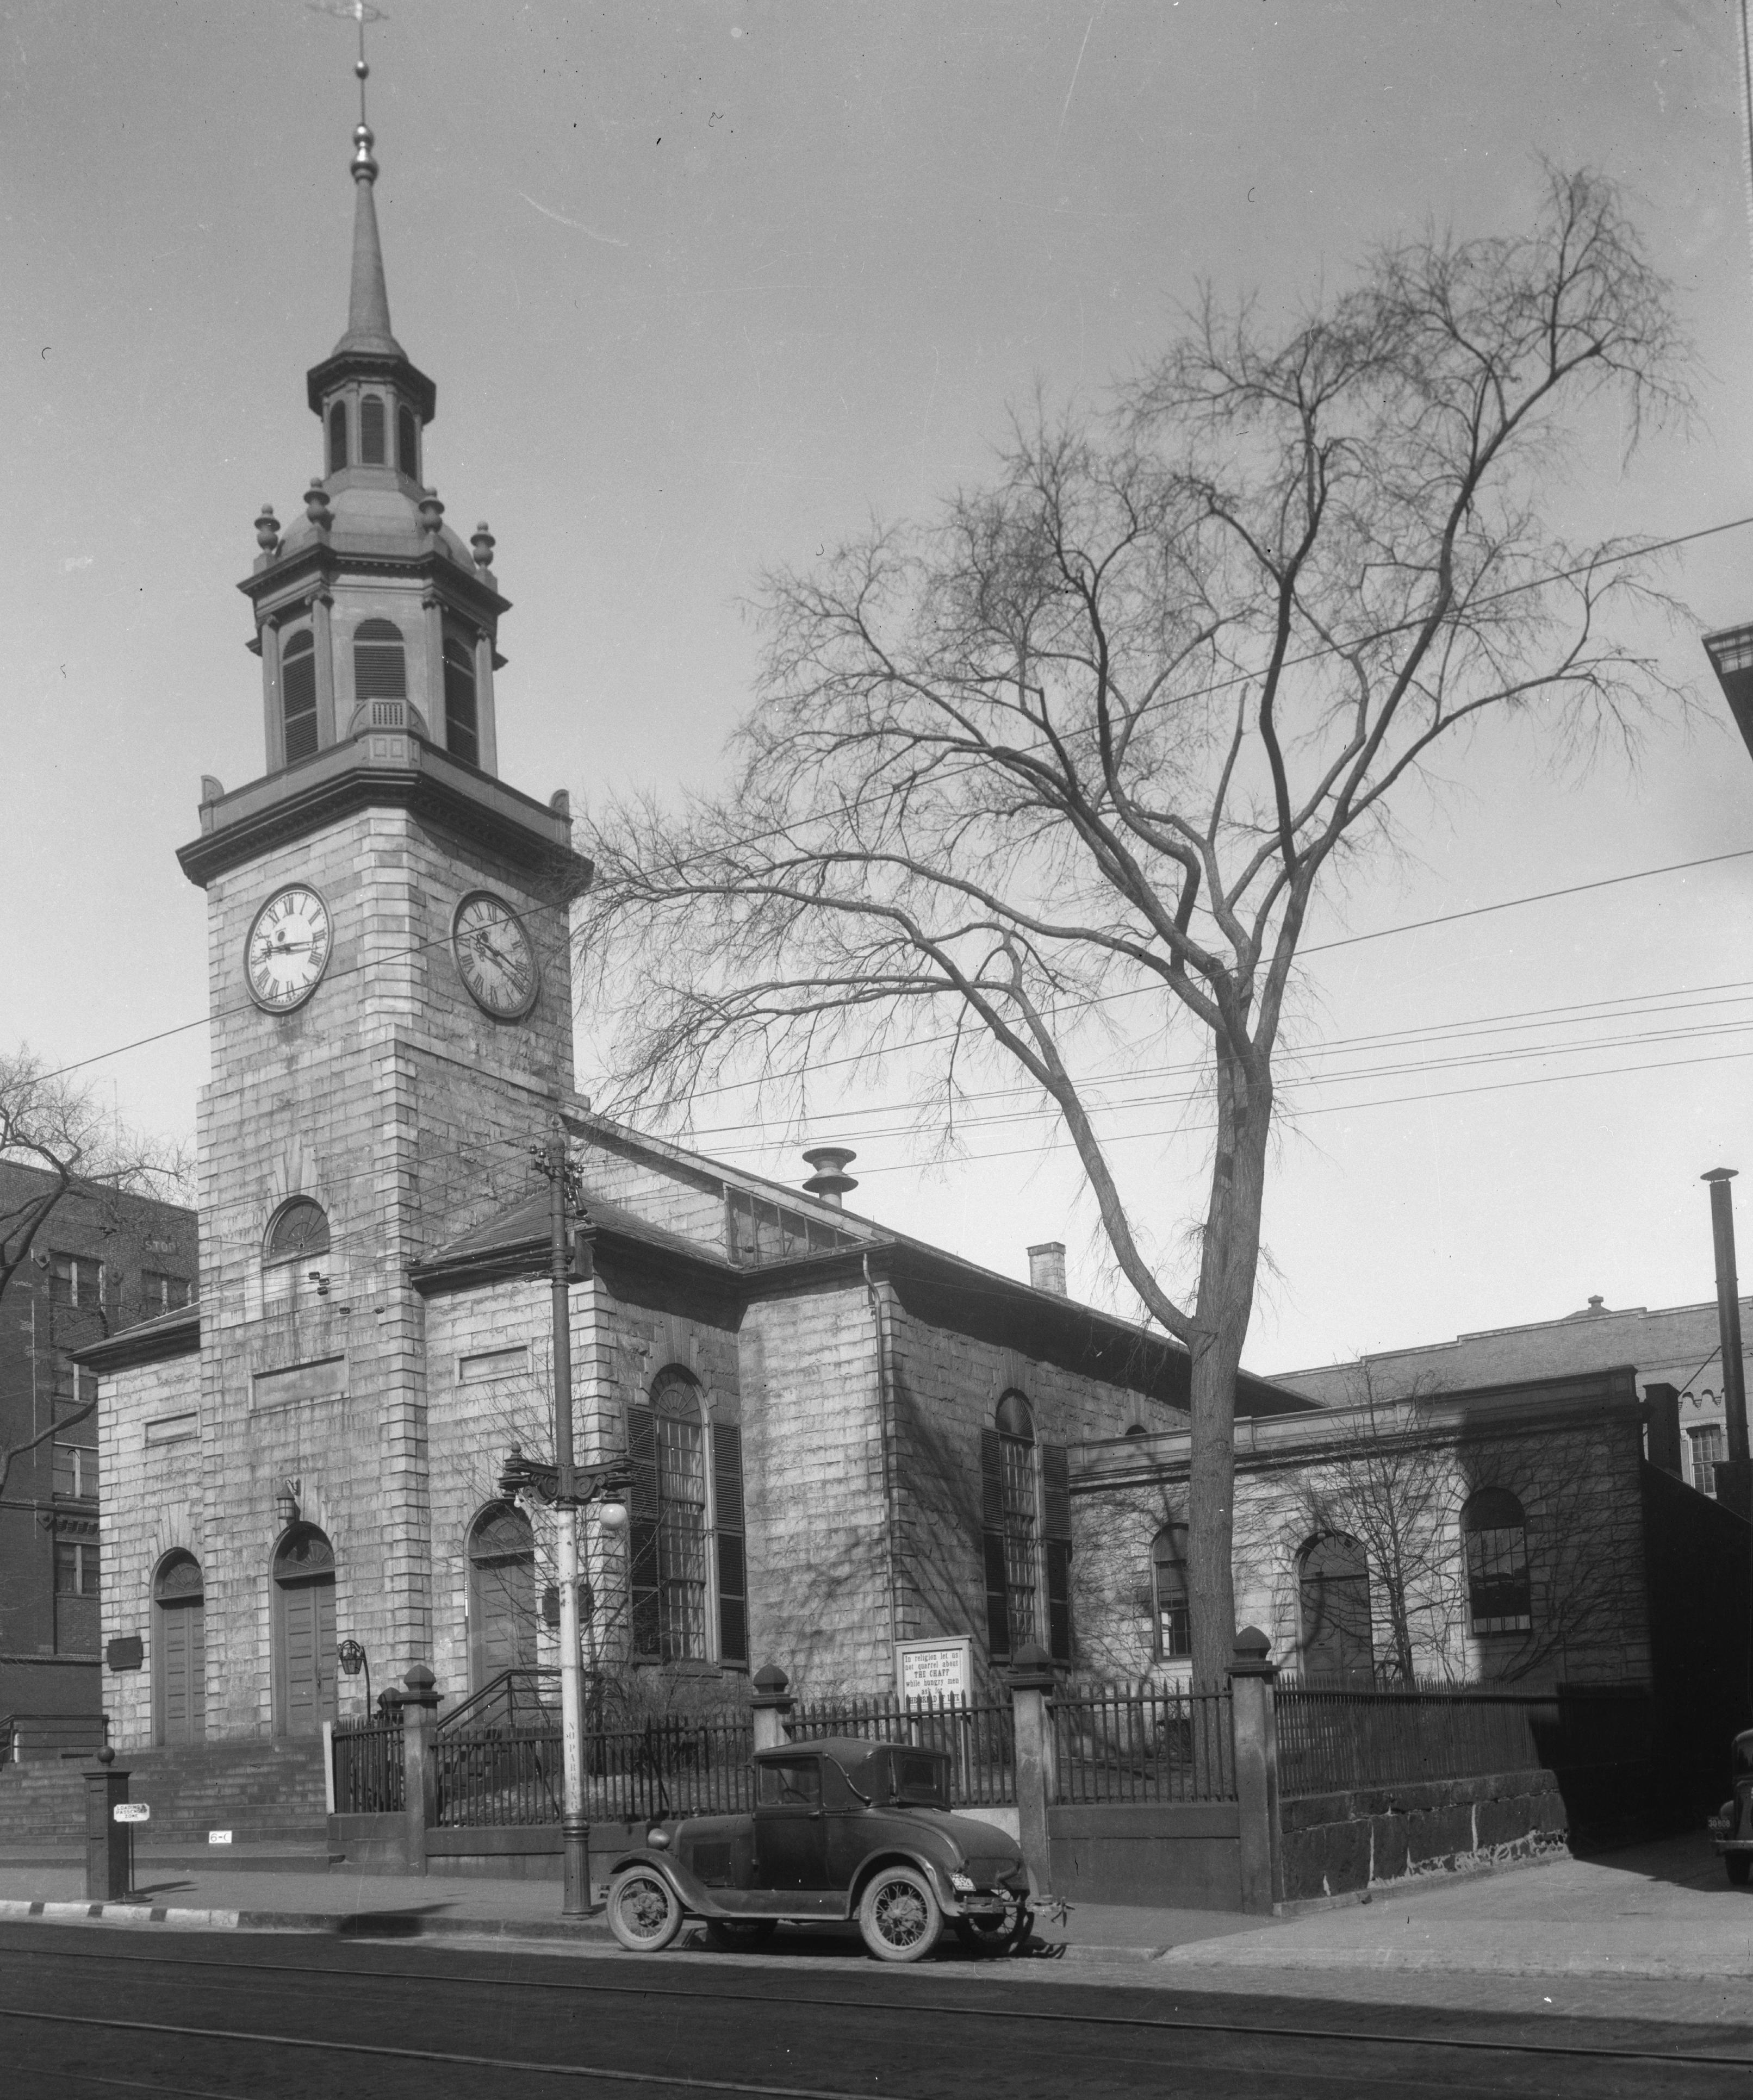 Photo of the Church in April of 1936, Photograph by Allen L. Hubbard, Credit to Library of Congress, Prints & Photographs Division, ME,3-PORT,3-7